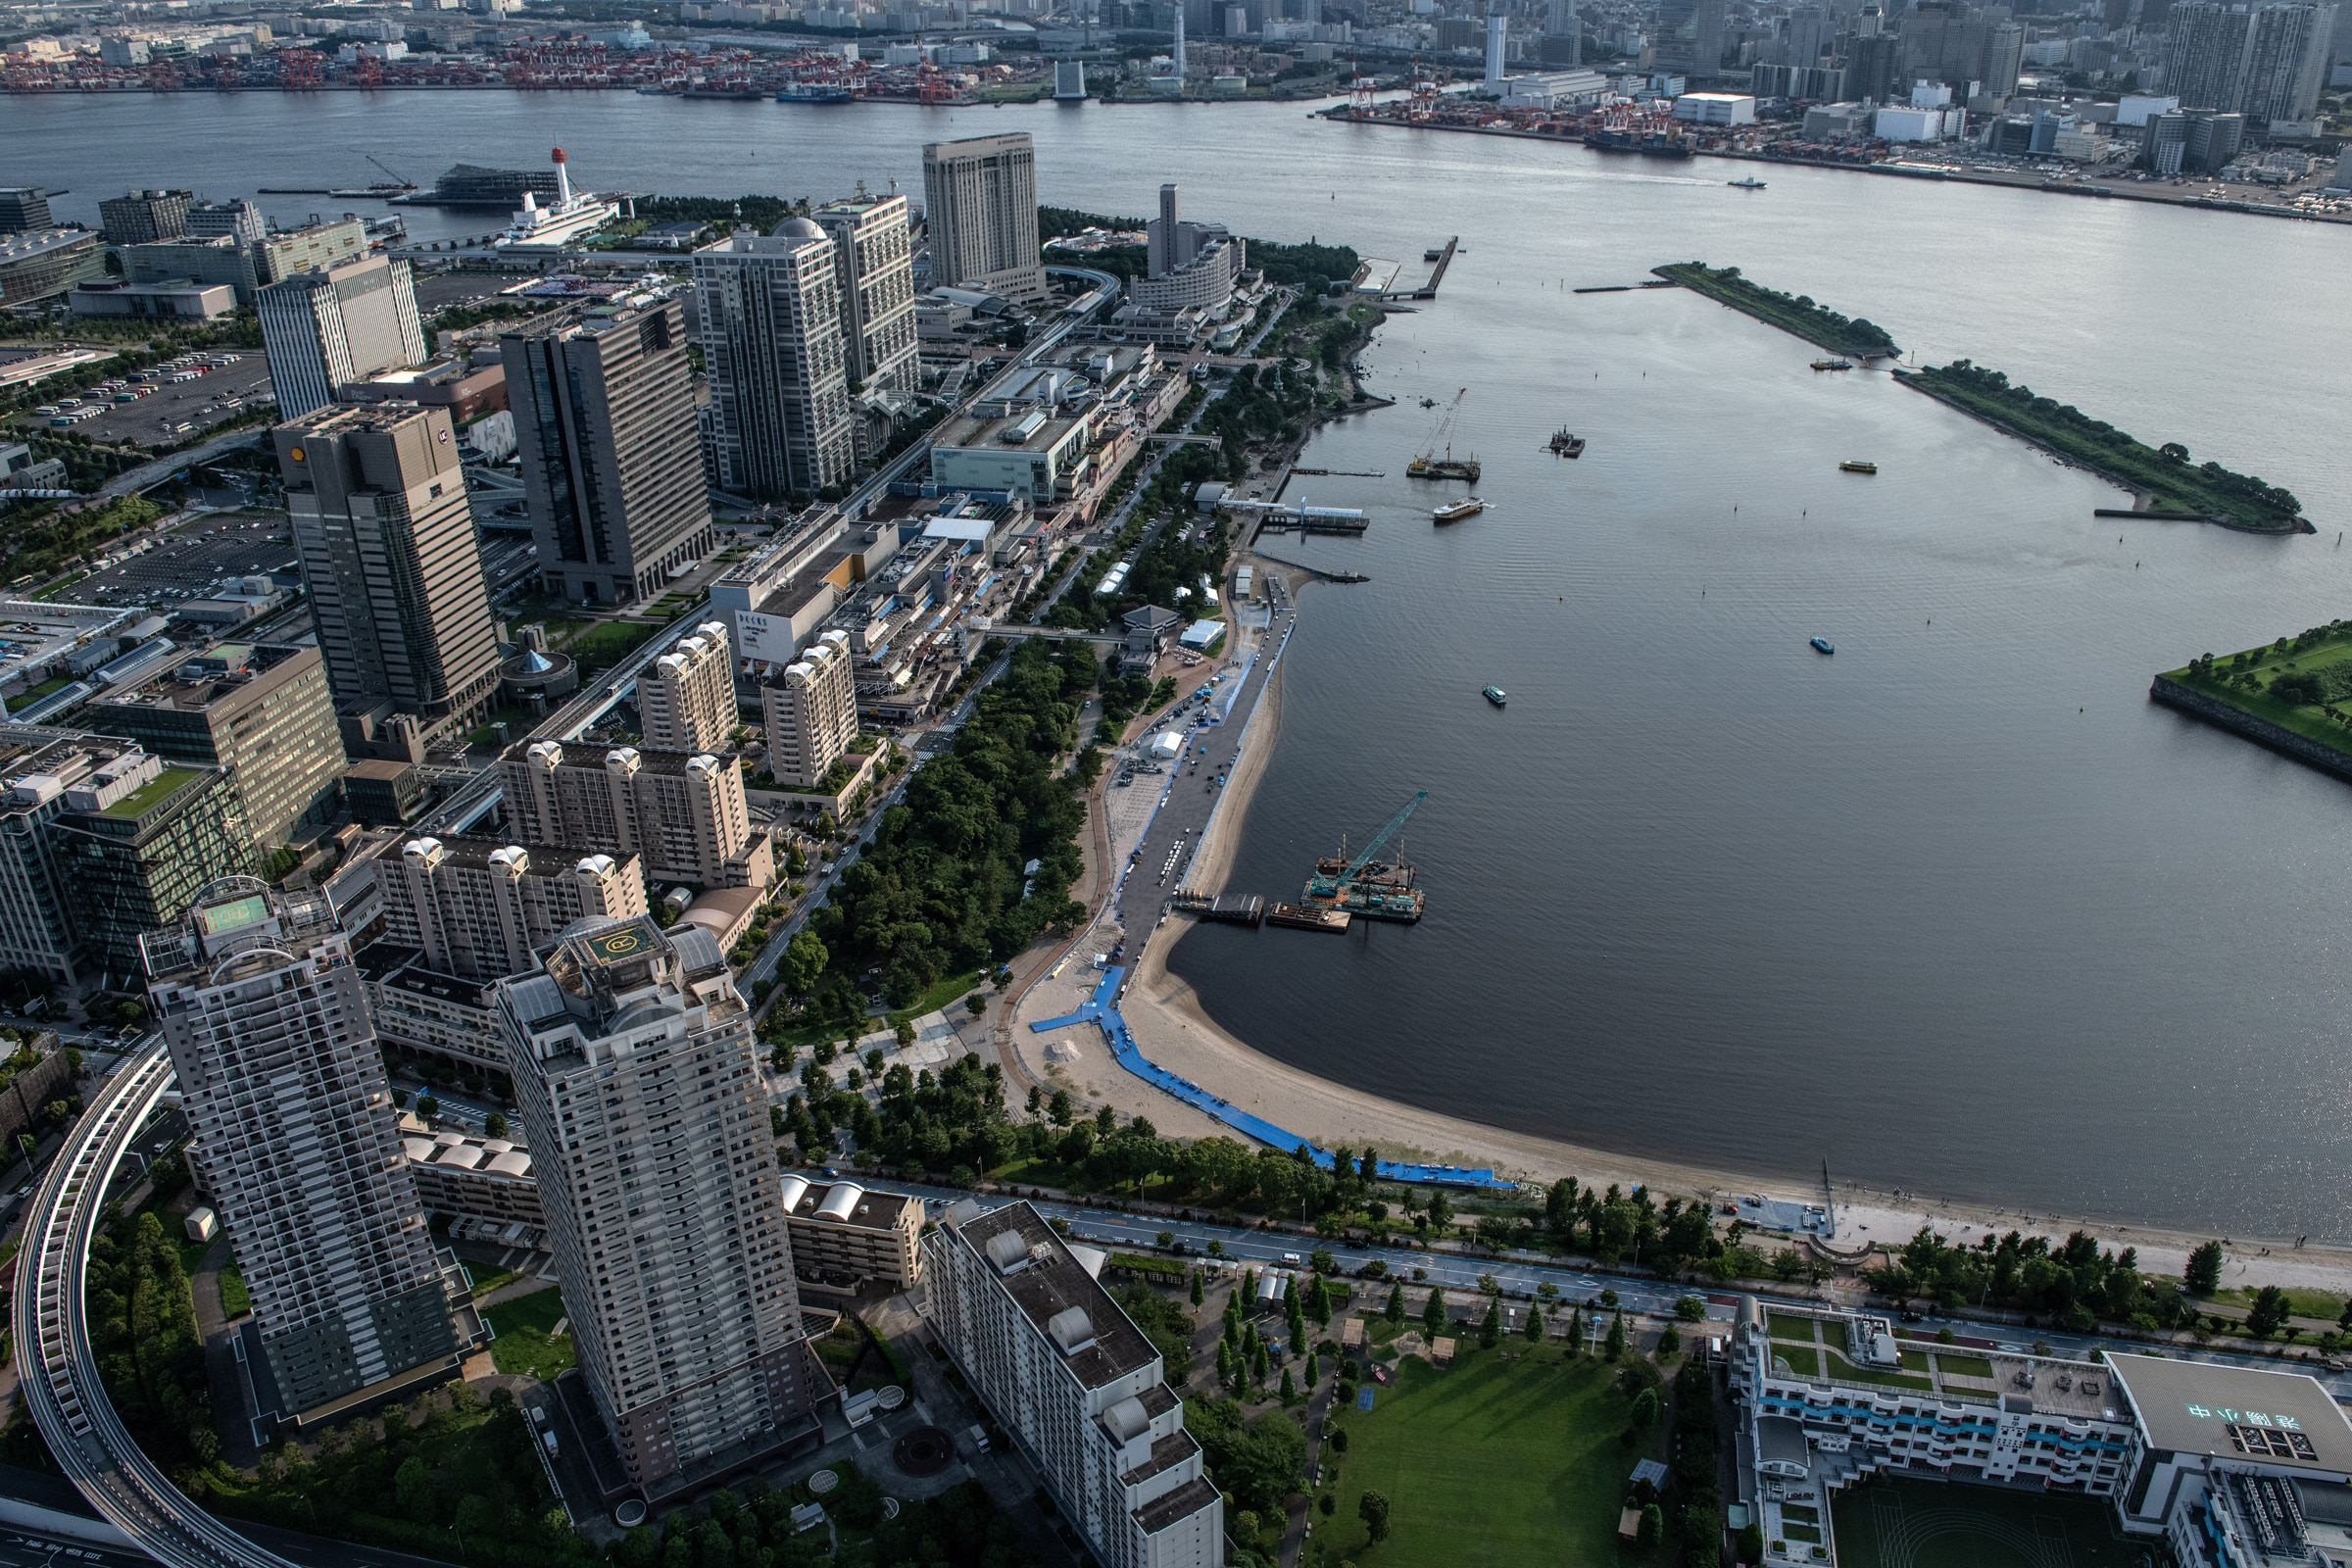 Tokyo 2020 - Olympic Venues